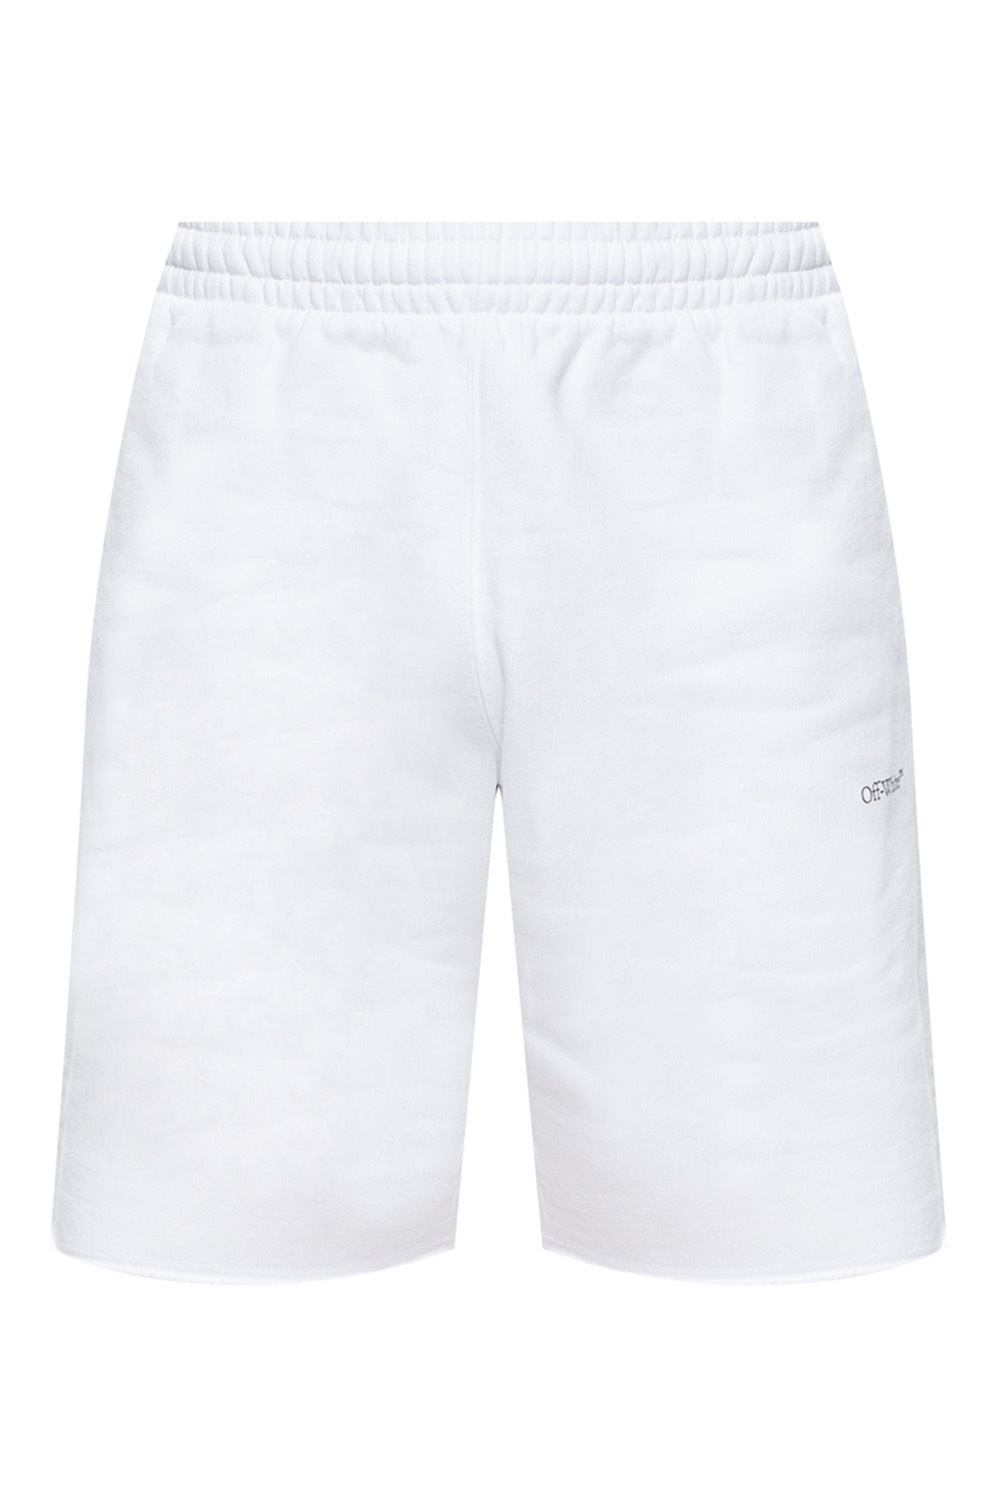 Off-White Shorts with logo